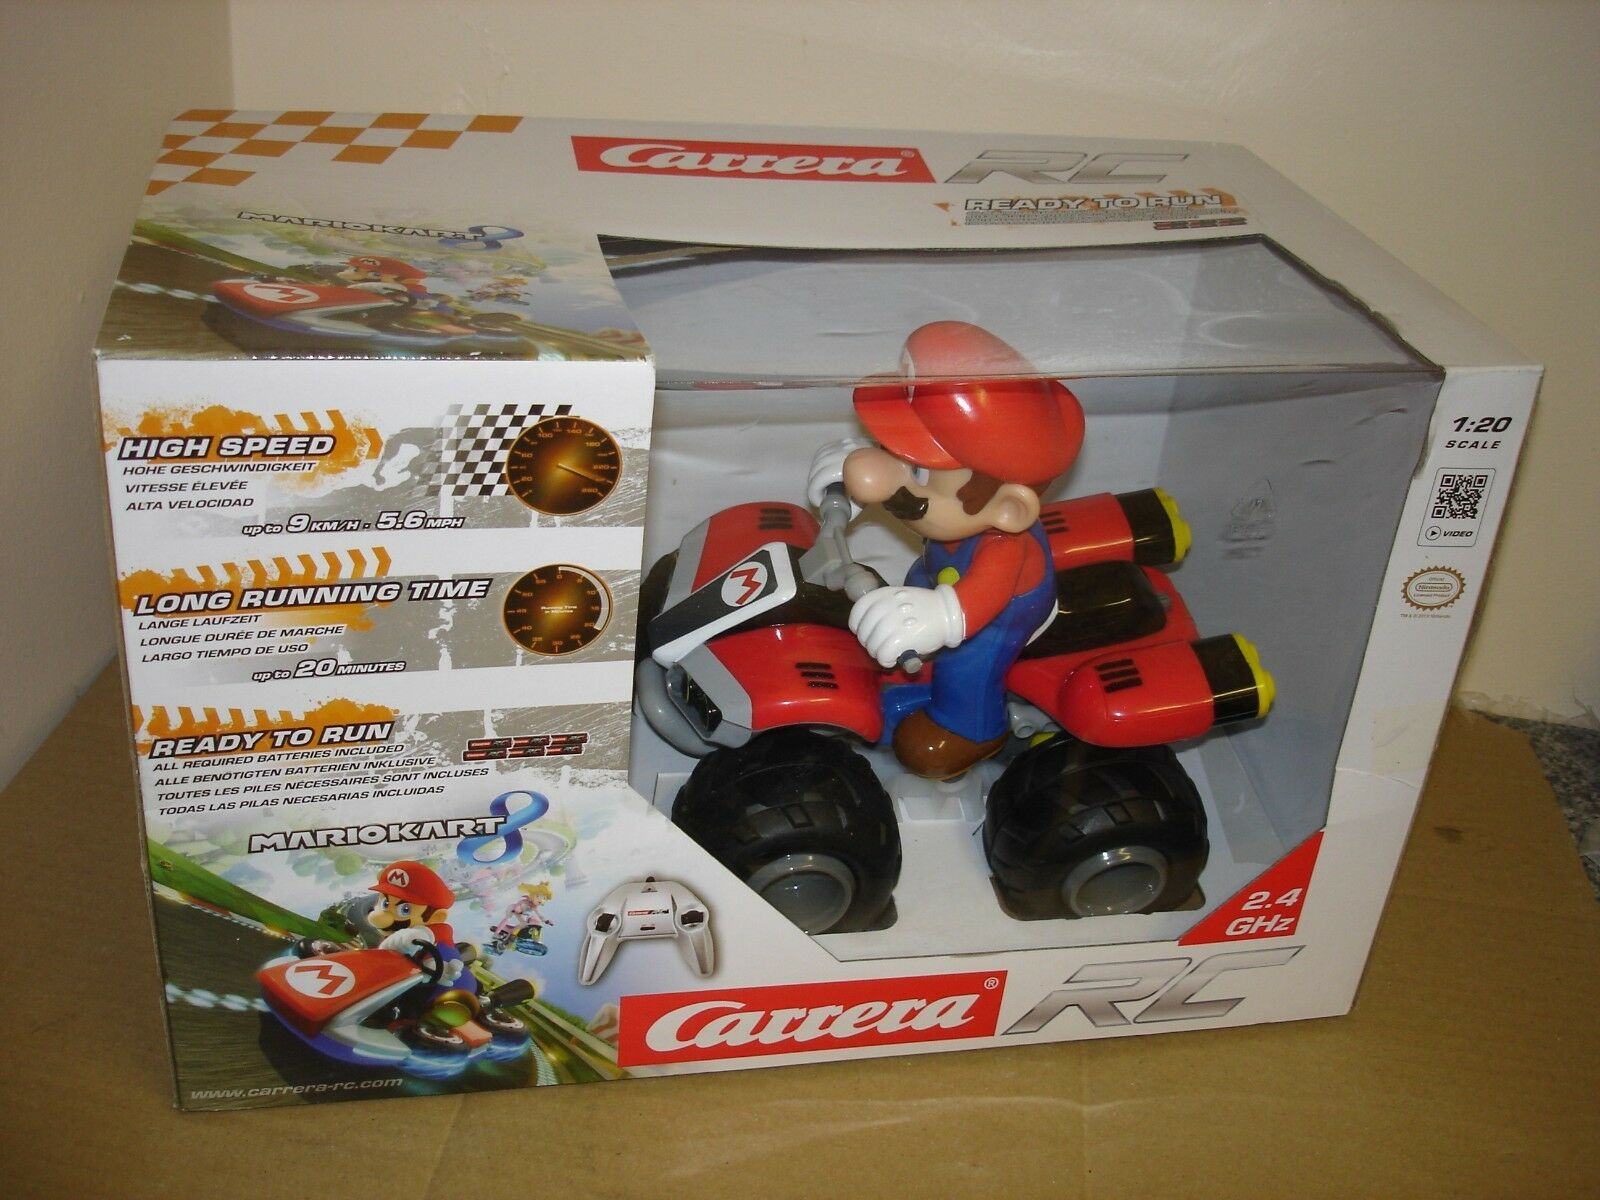 Carrera Mario Kart 8 1 20 scale Remote controlled Mario and Kart ready to go